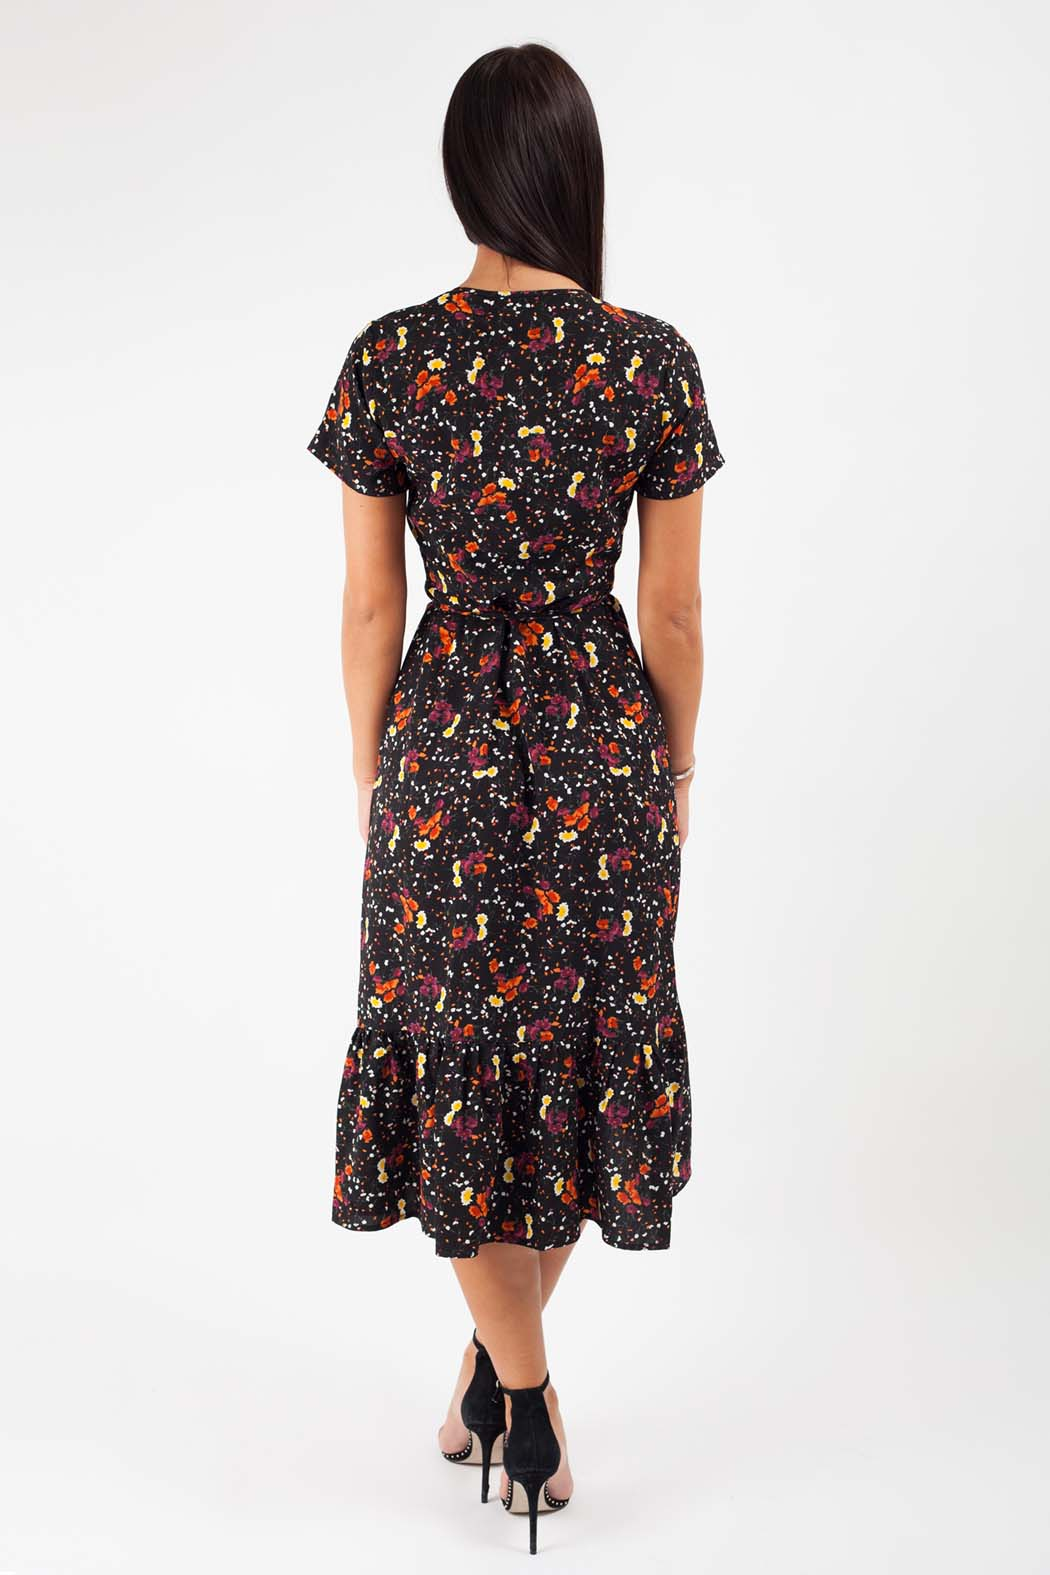 Fallon Black Floral Wrap Midi Dress